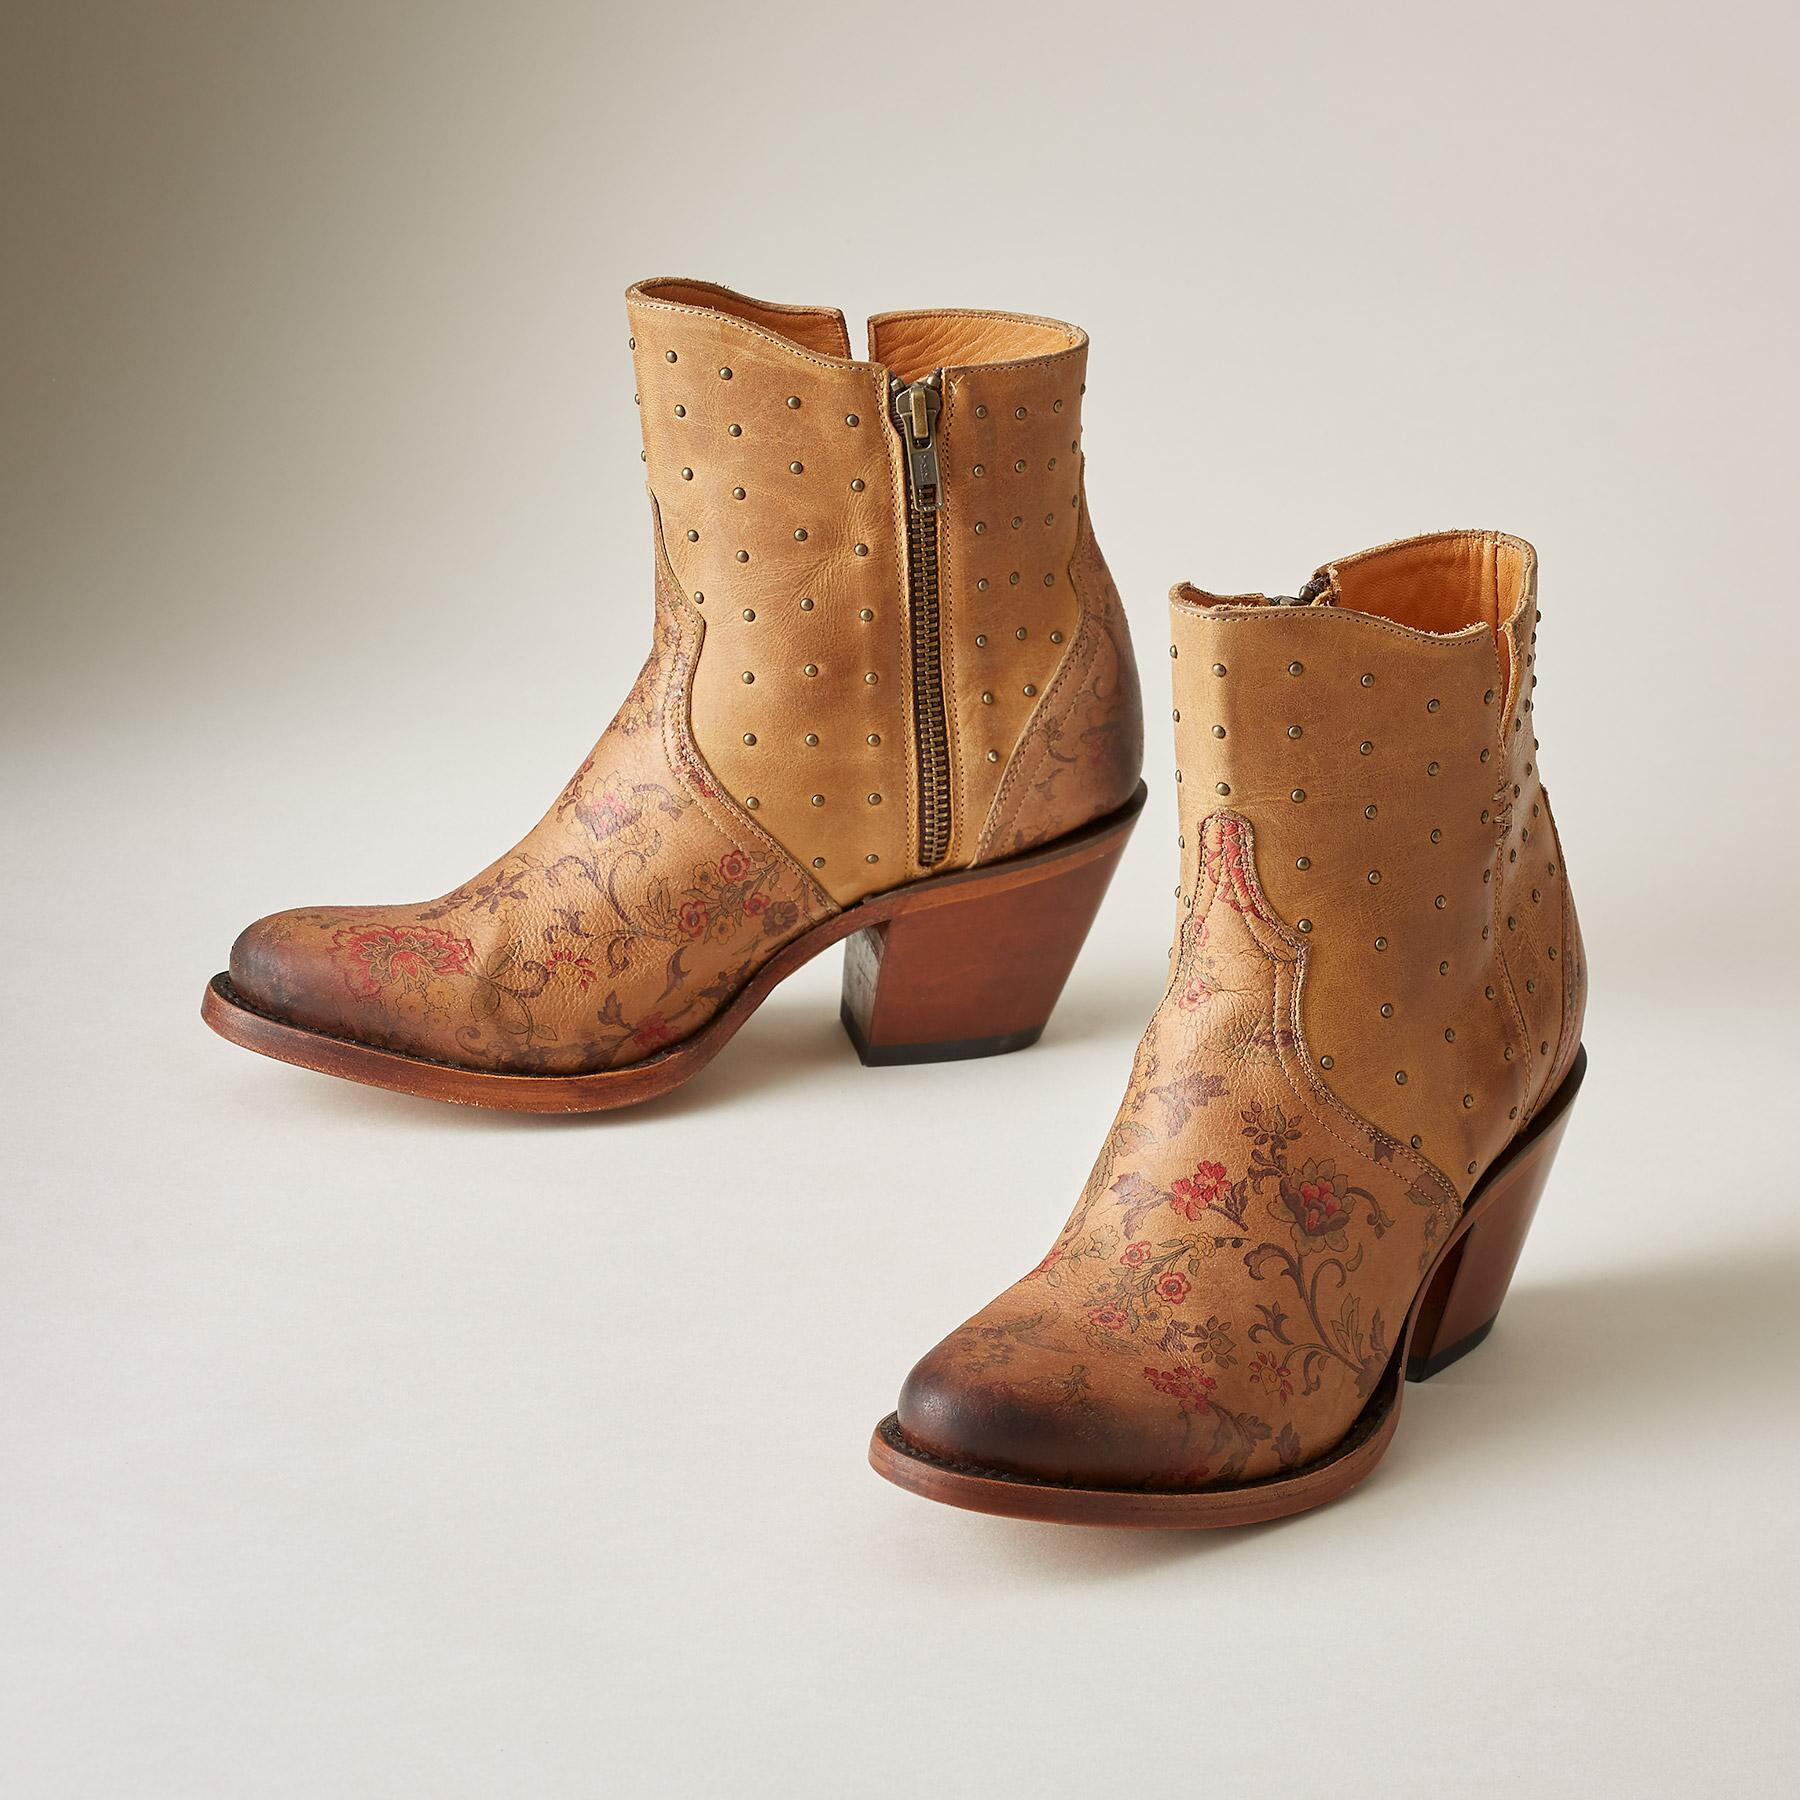 Lucchese Harlie Boots